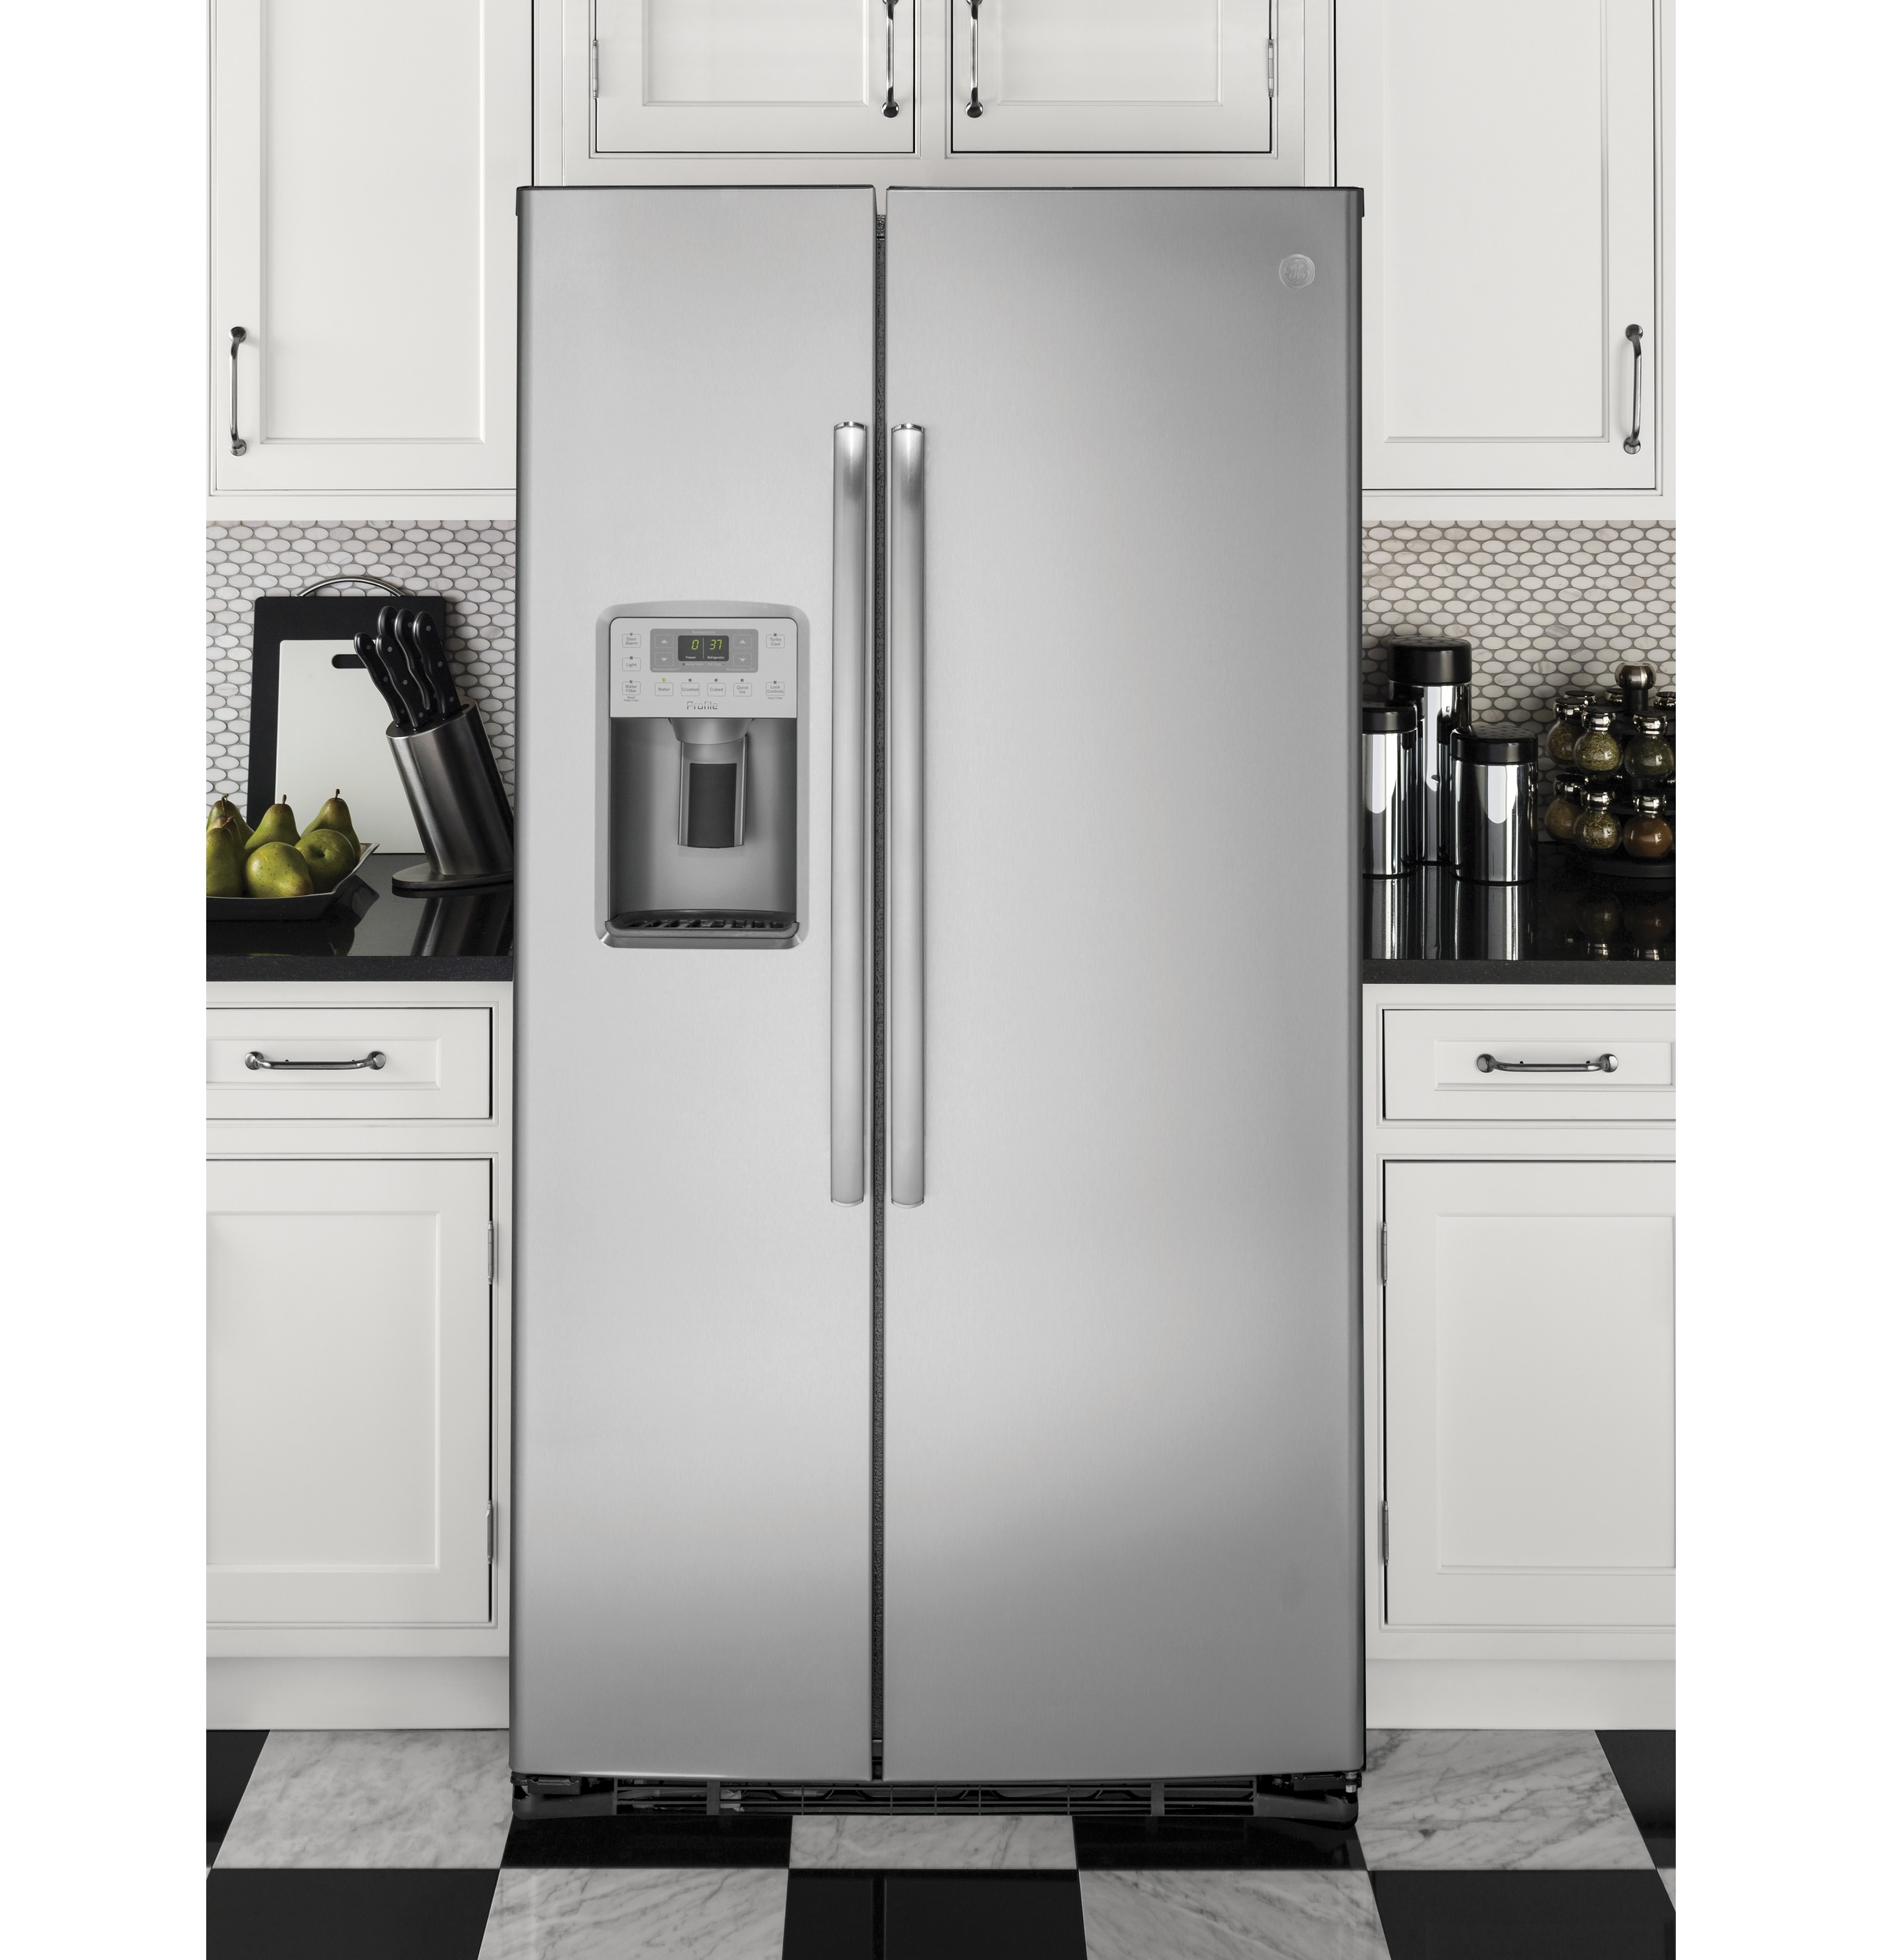 Ge 30 inch side by side white refrigerator - 1 Of 7